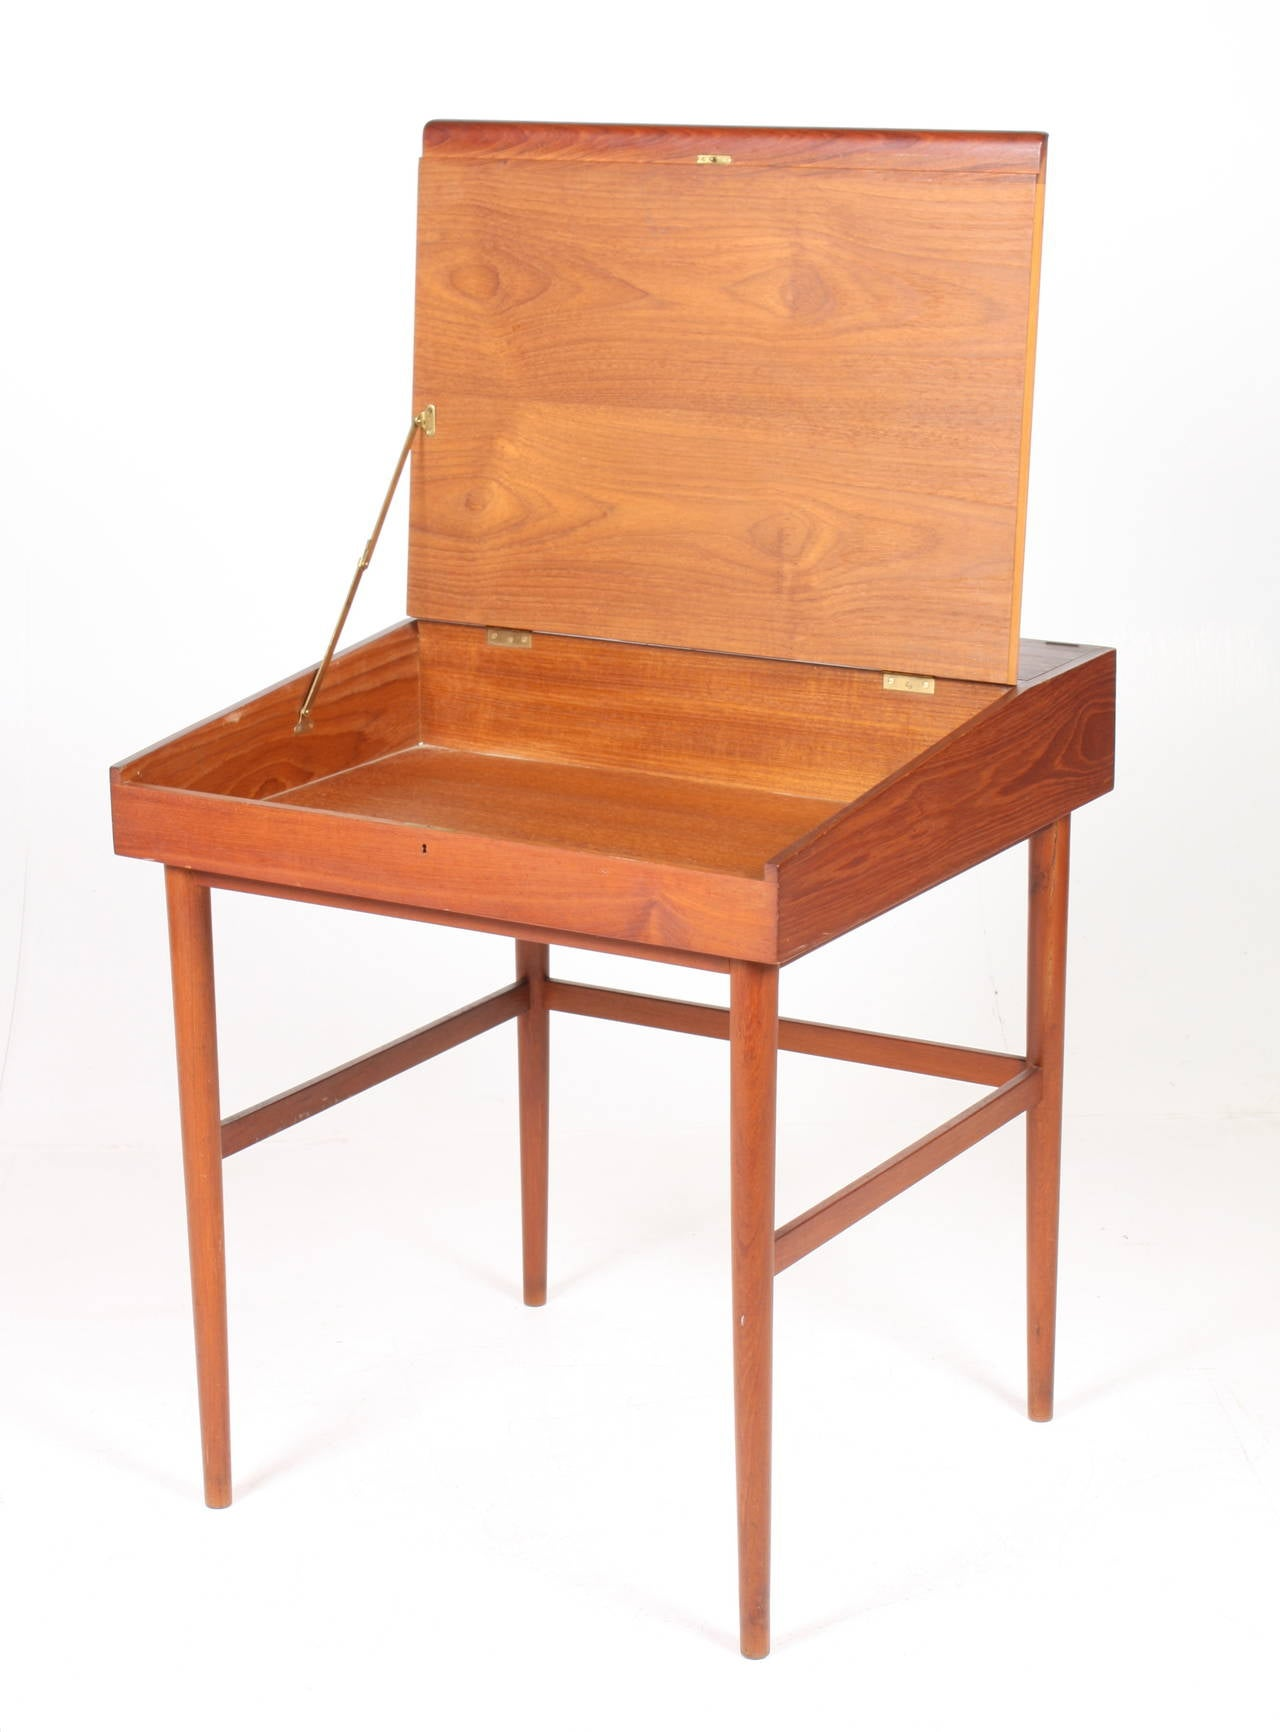 Writing Desk by Finn Juhl In Excellent Condition For Sale In Lejre, DK